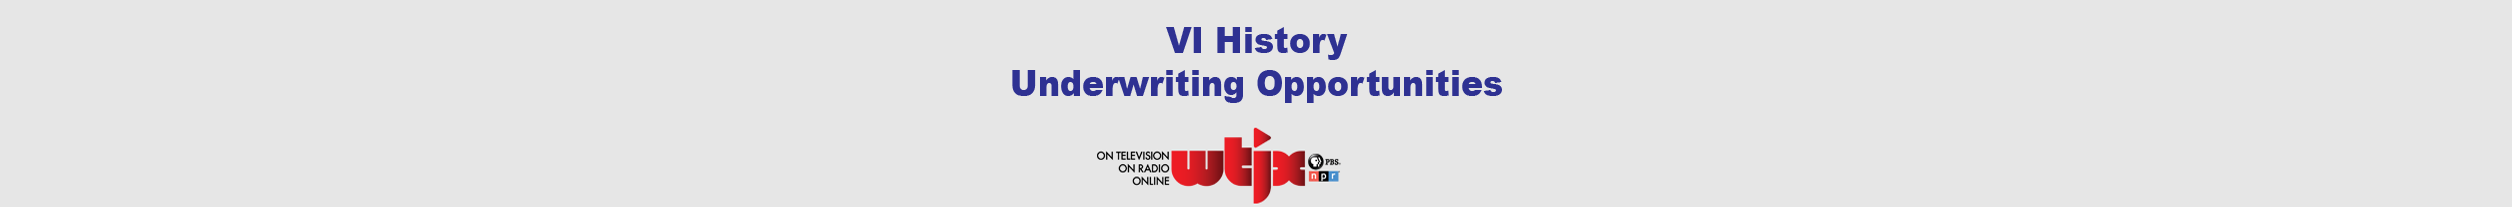 VI History Underwriting Opportunity